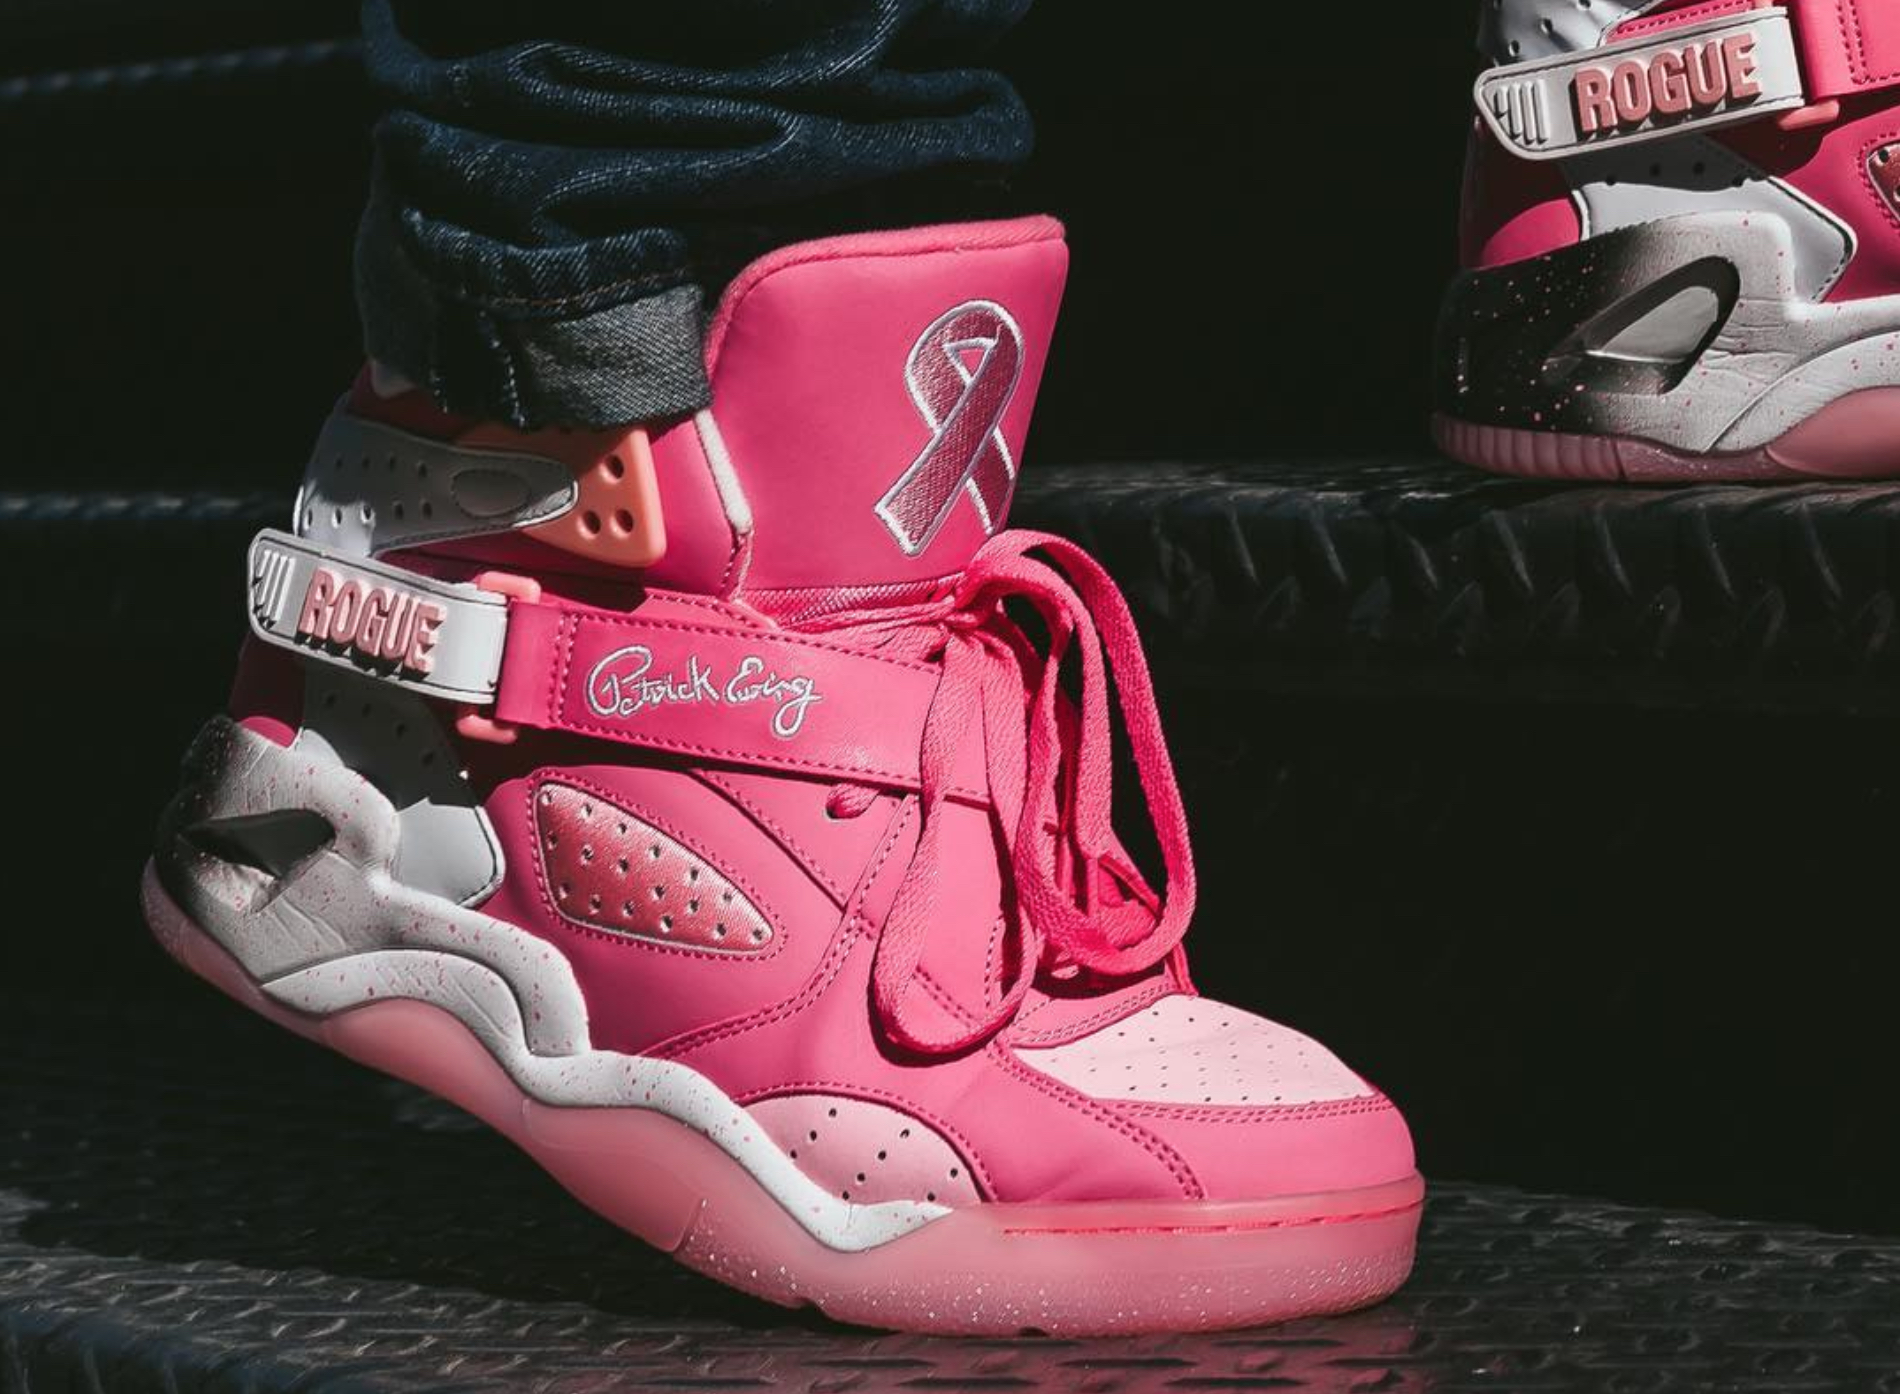 ewing rogue National Breast Cancer Foundation 1